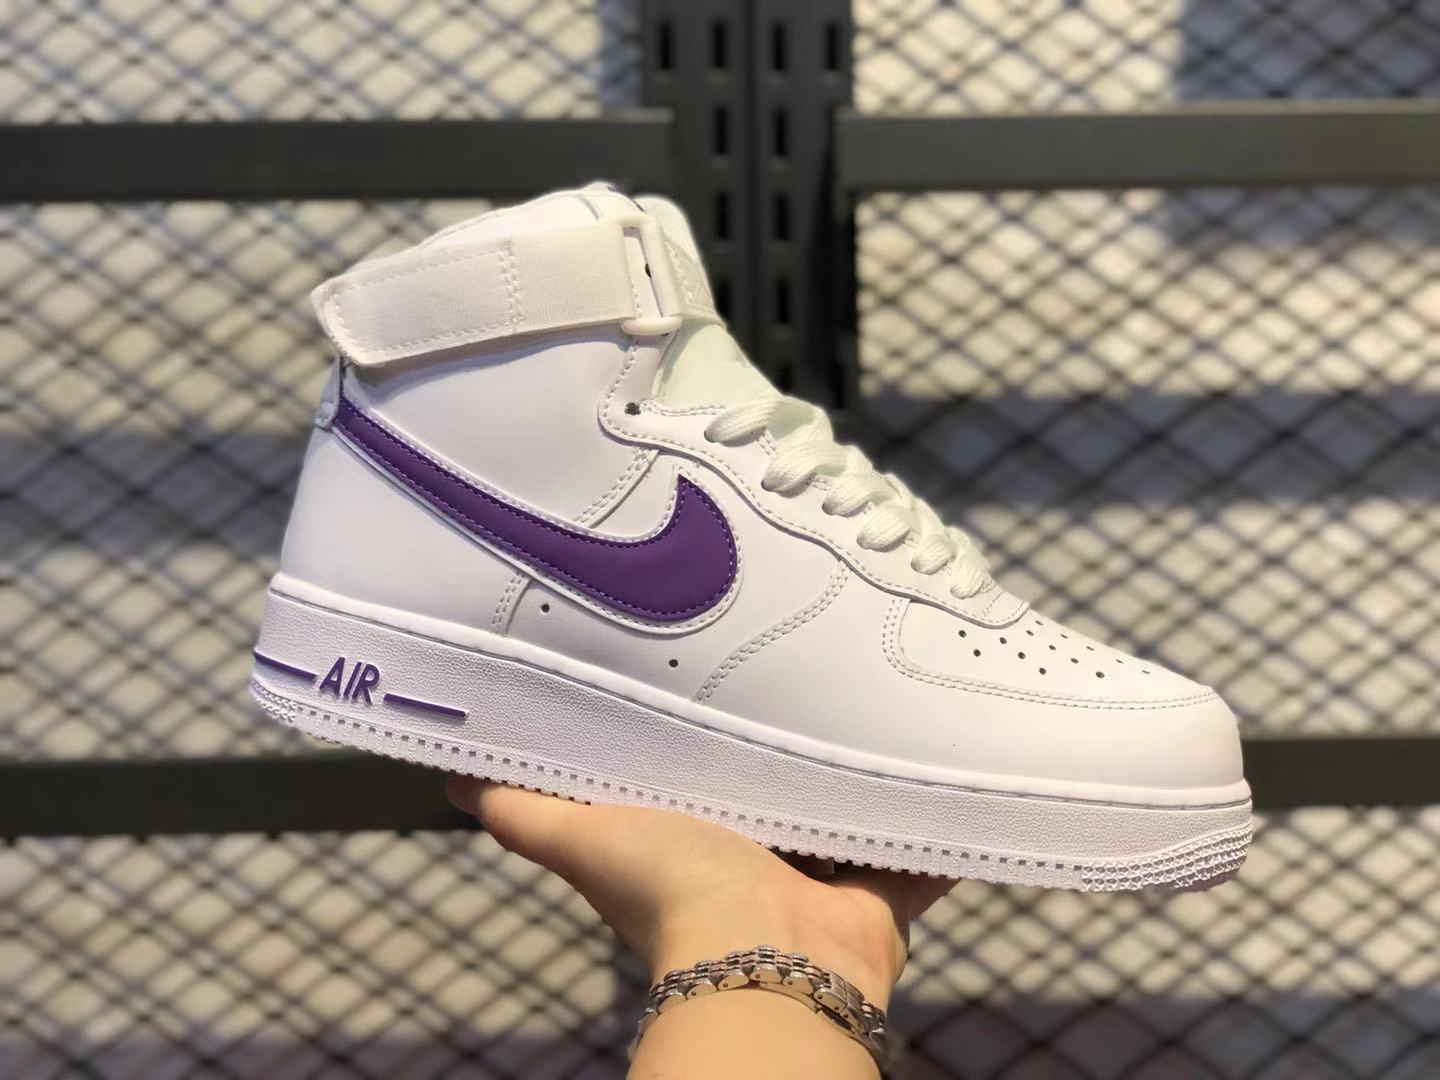 Nike Air Force 1 High White/Court Purple Top Shoes Cheap Price AT4141-103